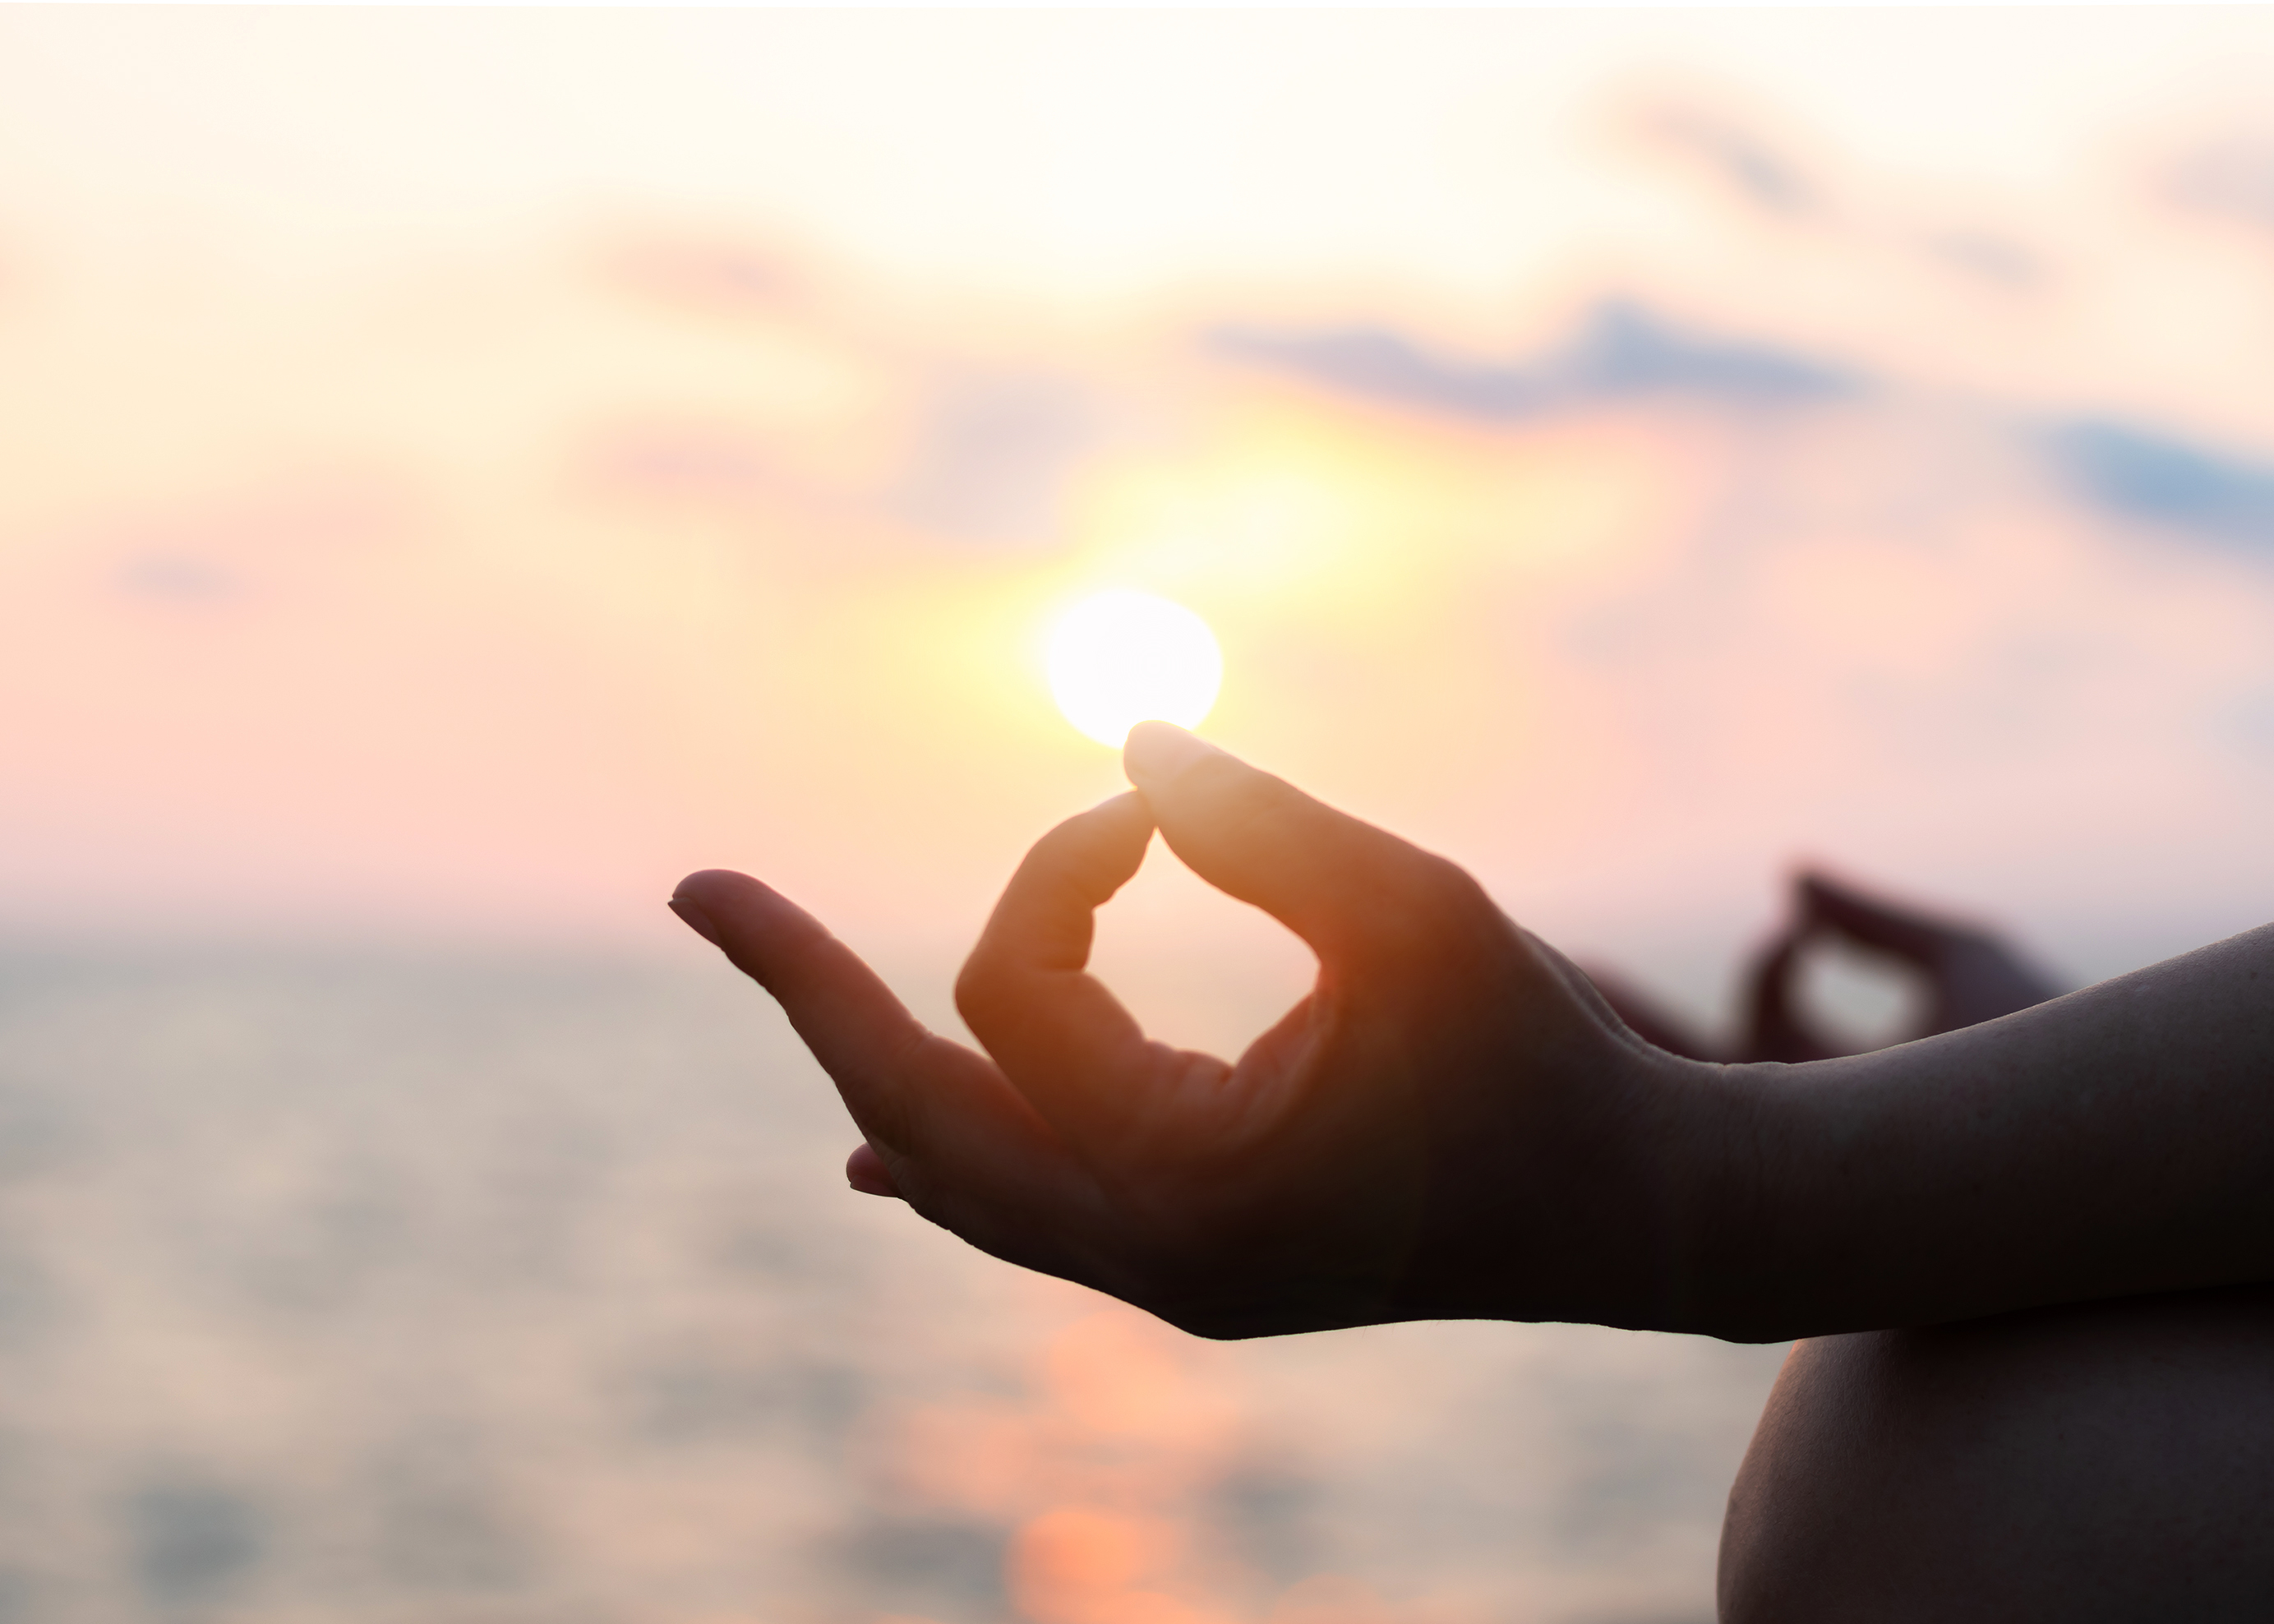 Mantra,Yoga,Meditation,,Spiritual,Mental,Health,Practice,With,Silhouette,Of